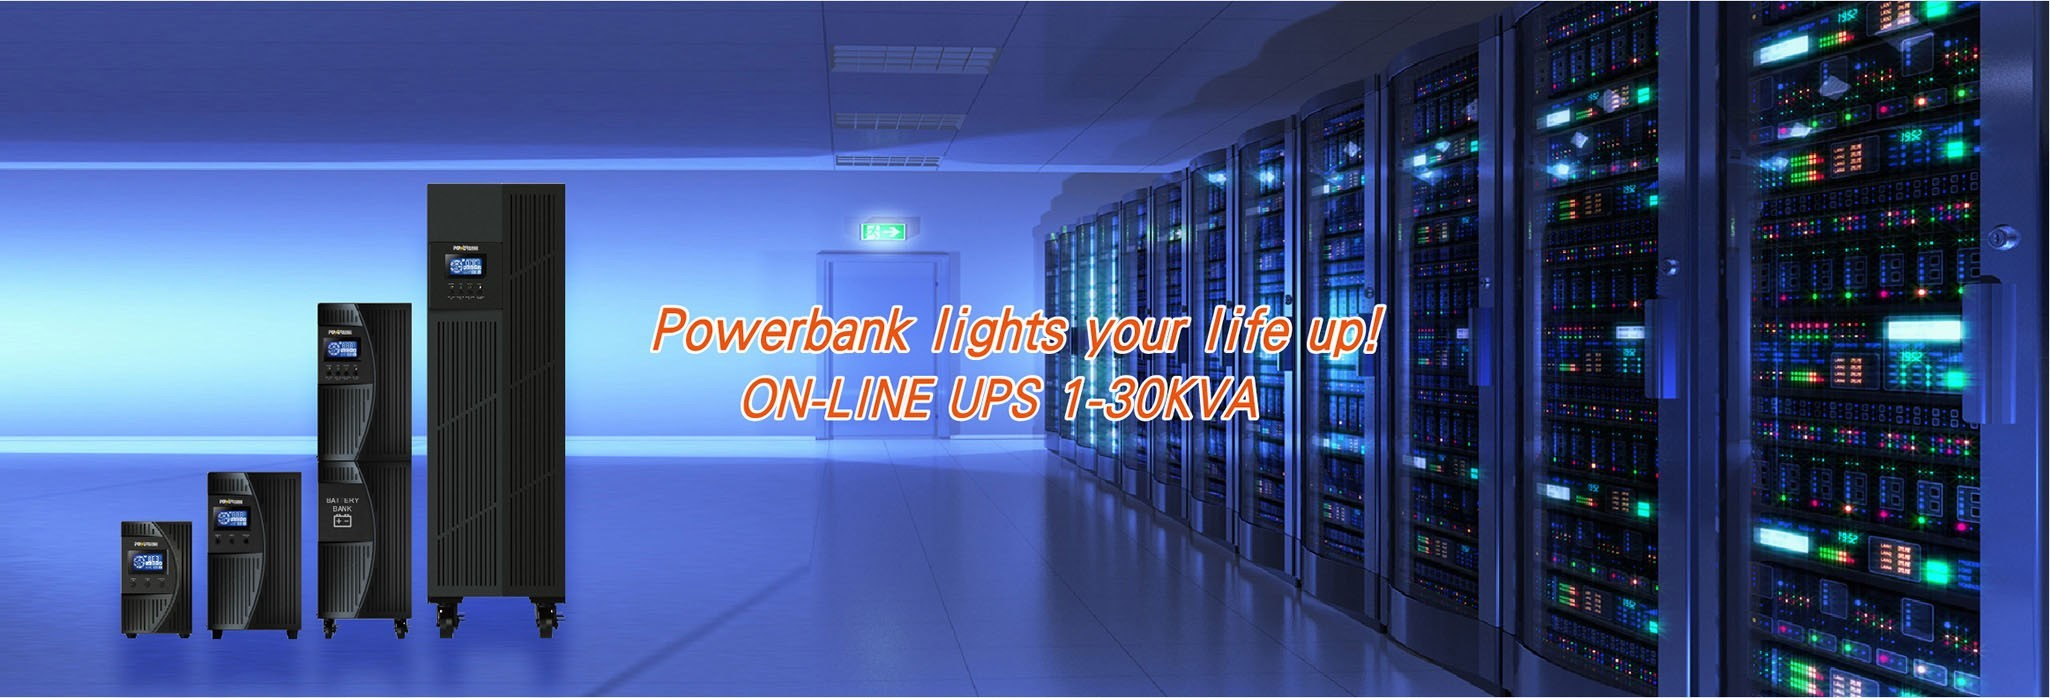 Powerbank lights your life up!